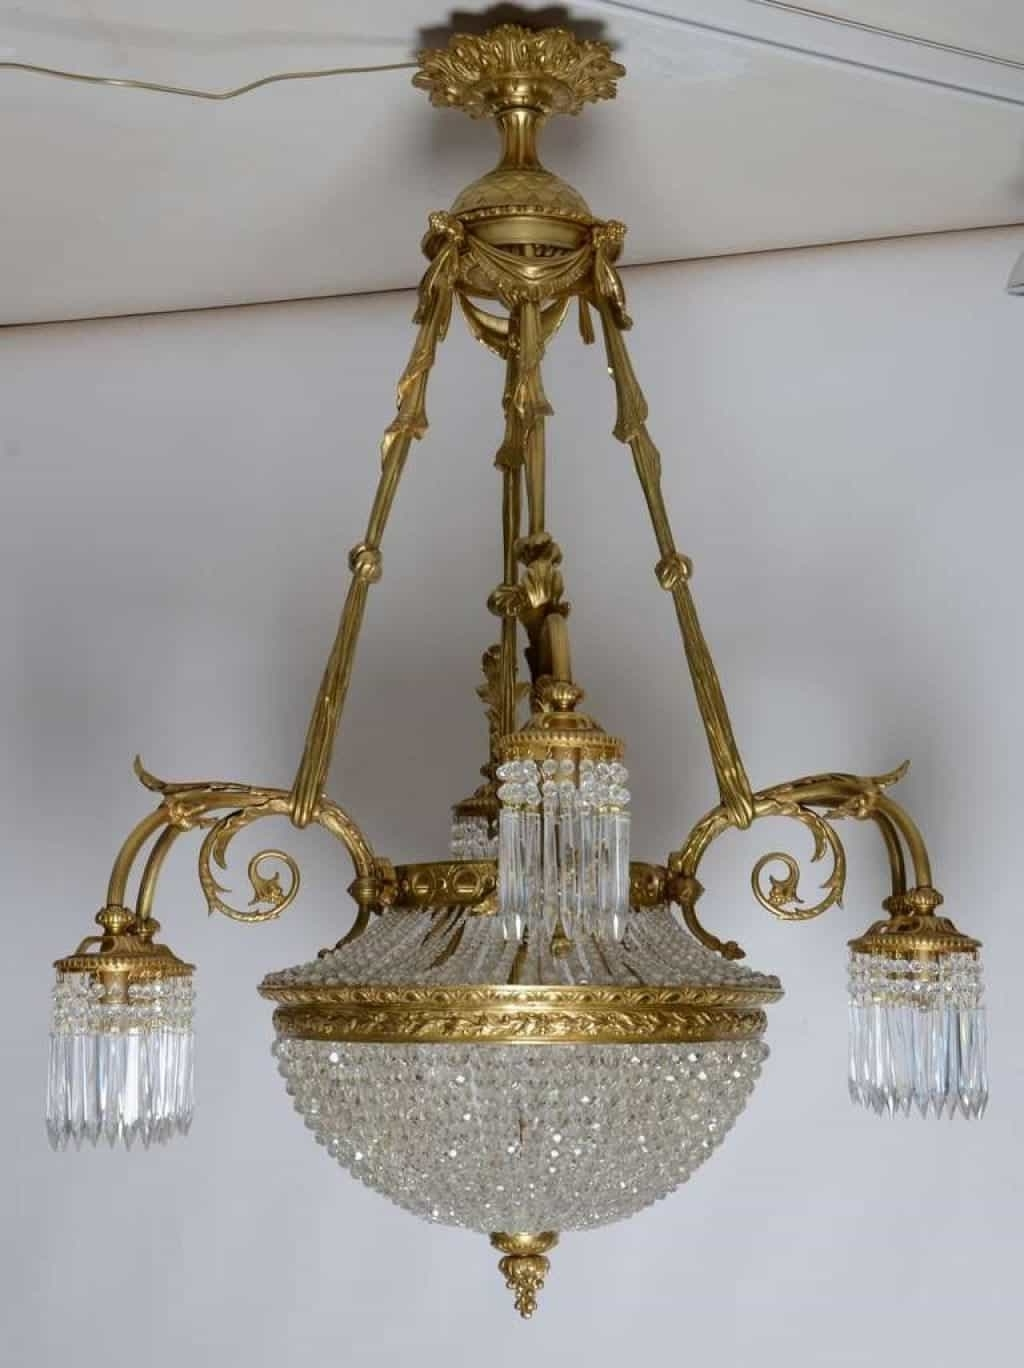 Xtend Pertaining To Well Known Antique French Chandeliers (View 6 of 20)